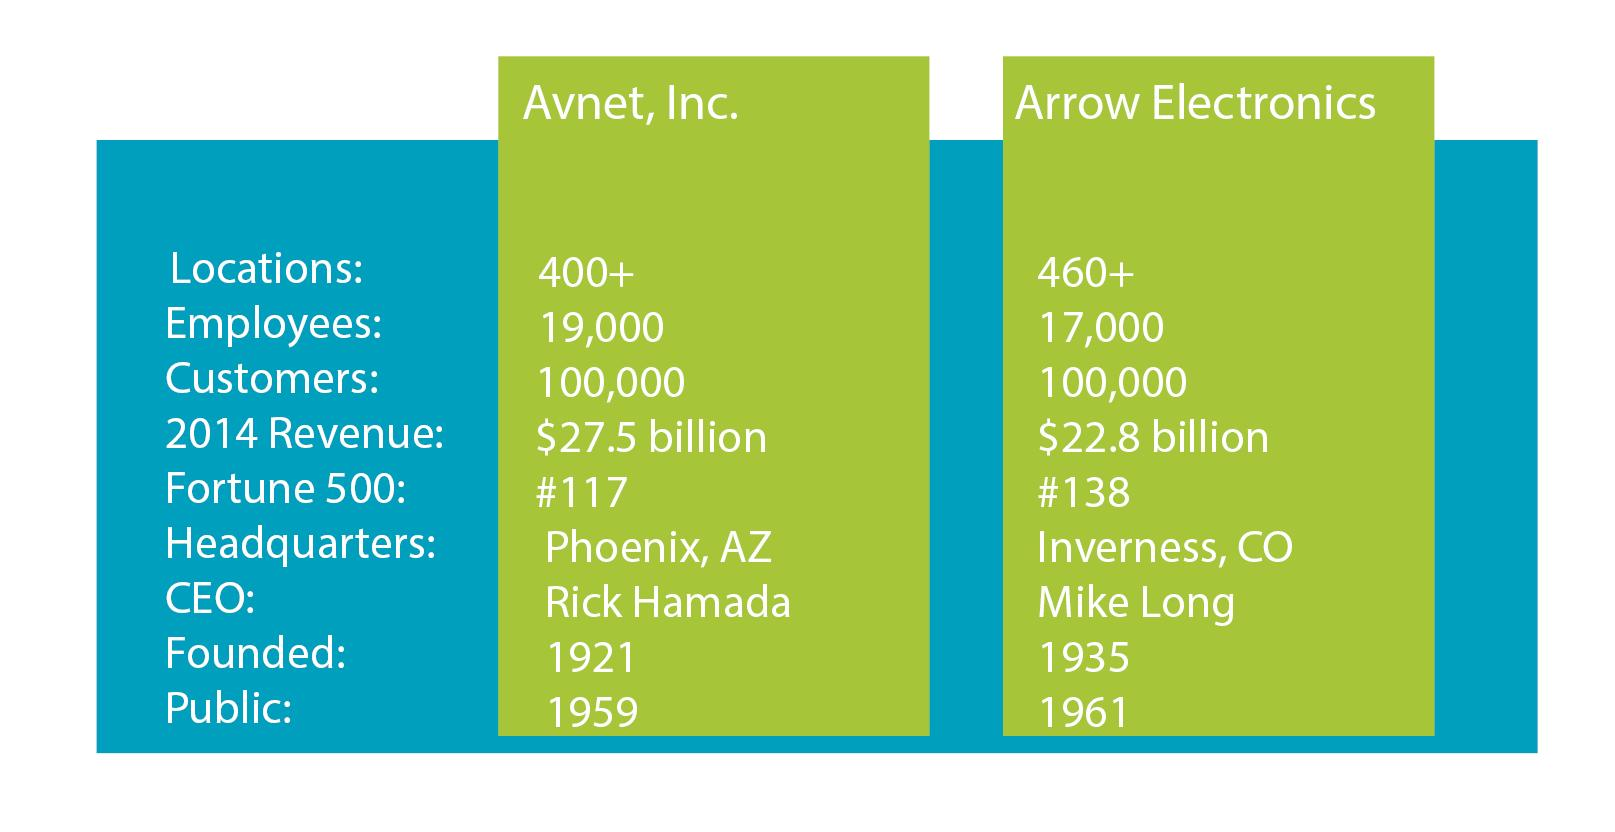 Avnet_vs_arrow_100.jpg